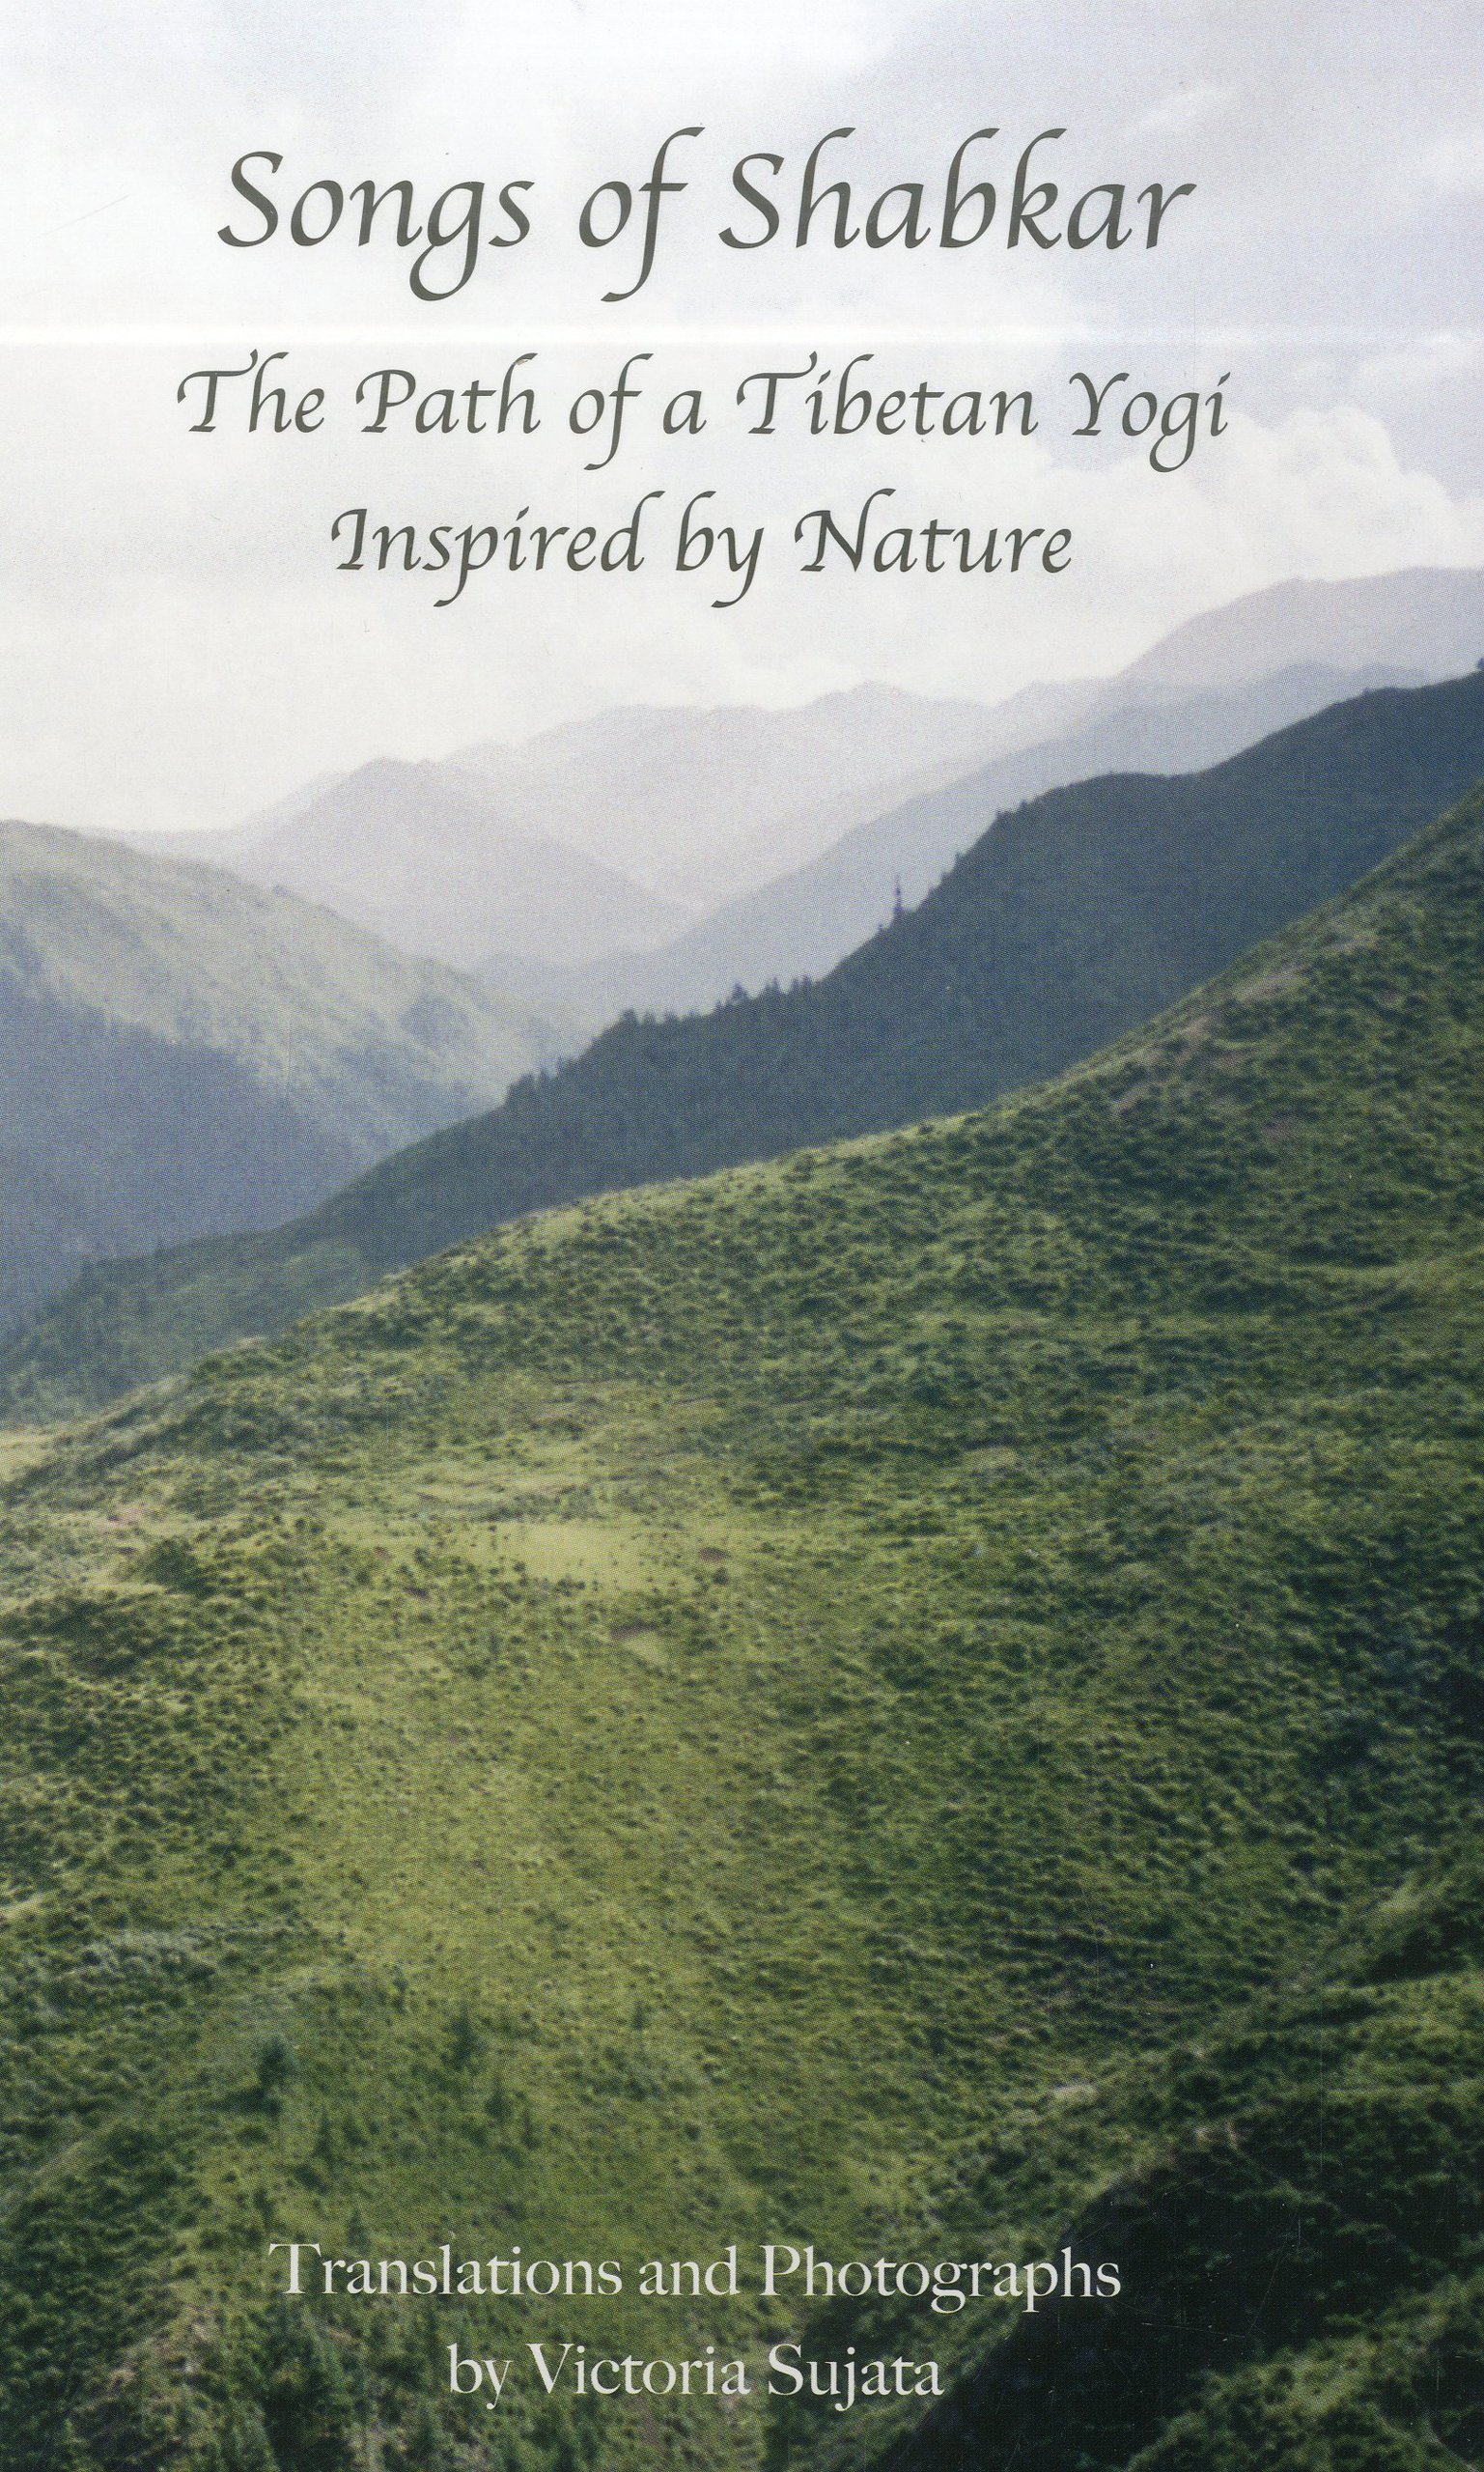 Songs of Shabkar: The Path of a Tibetan Yogi Inspired by Nature (Tibetan Translation) ebook